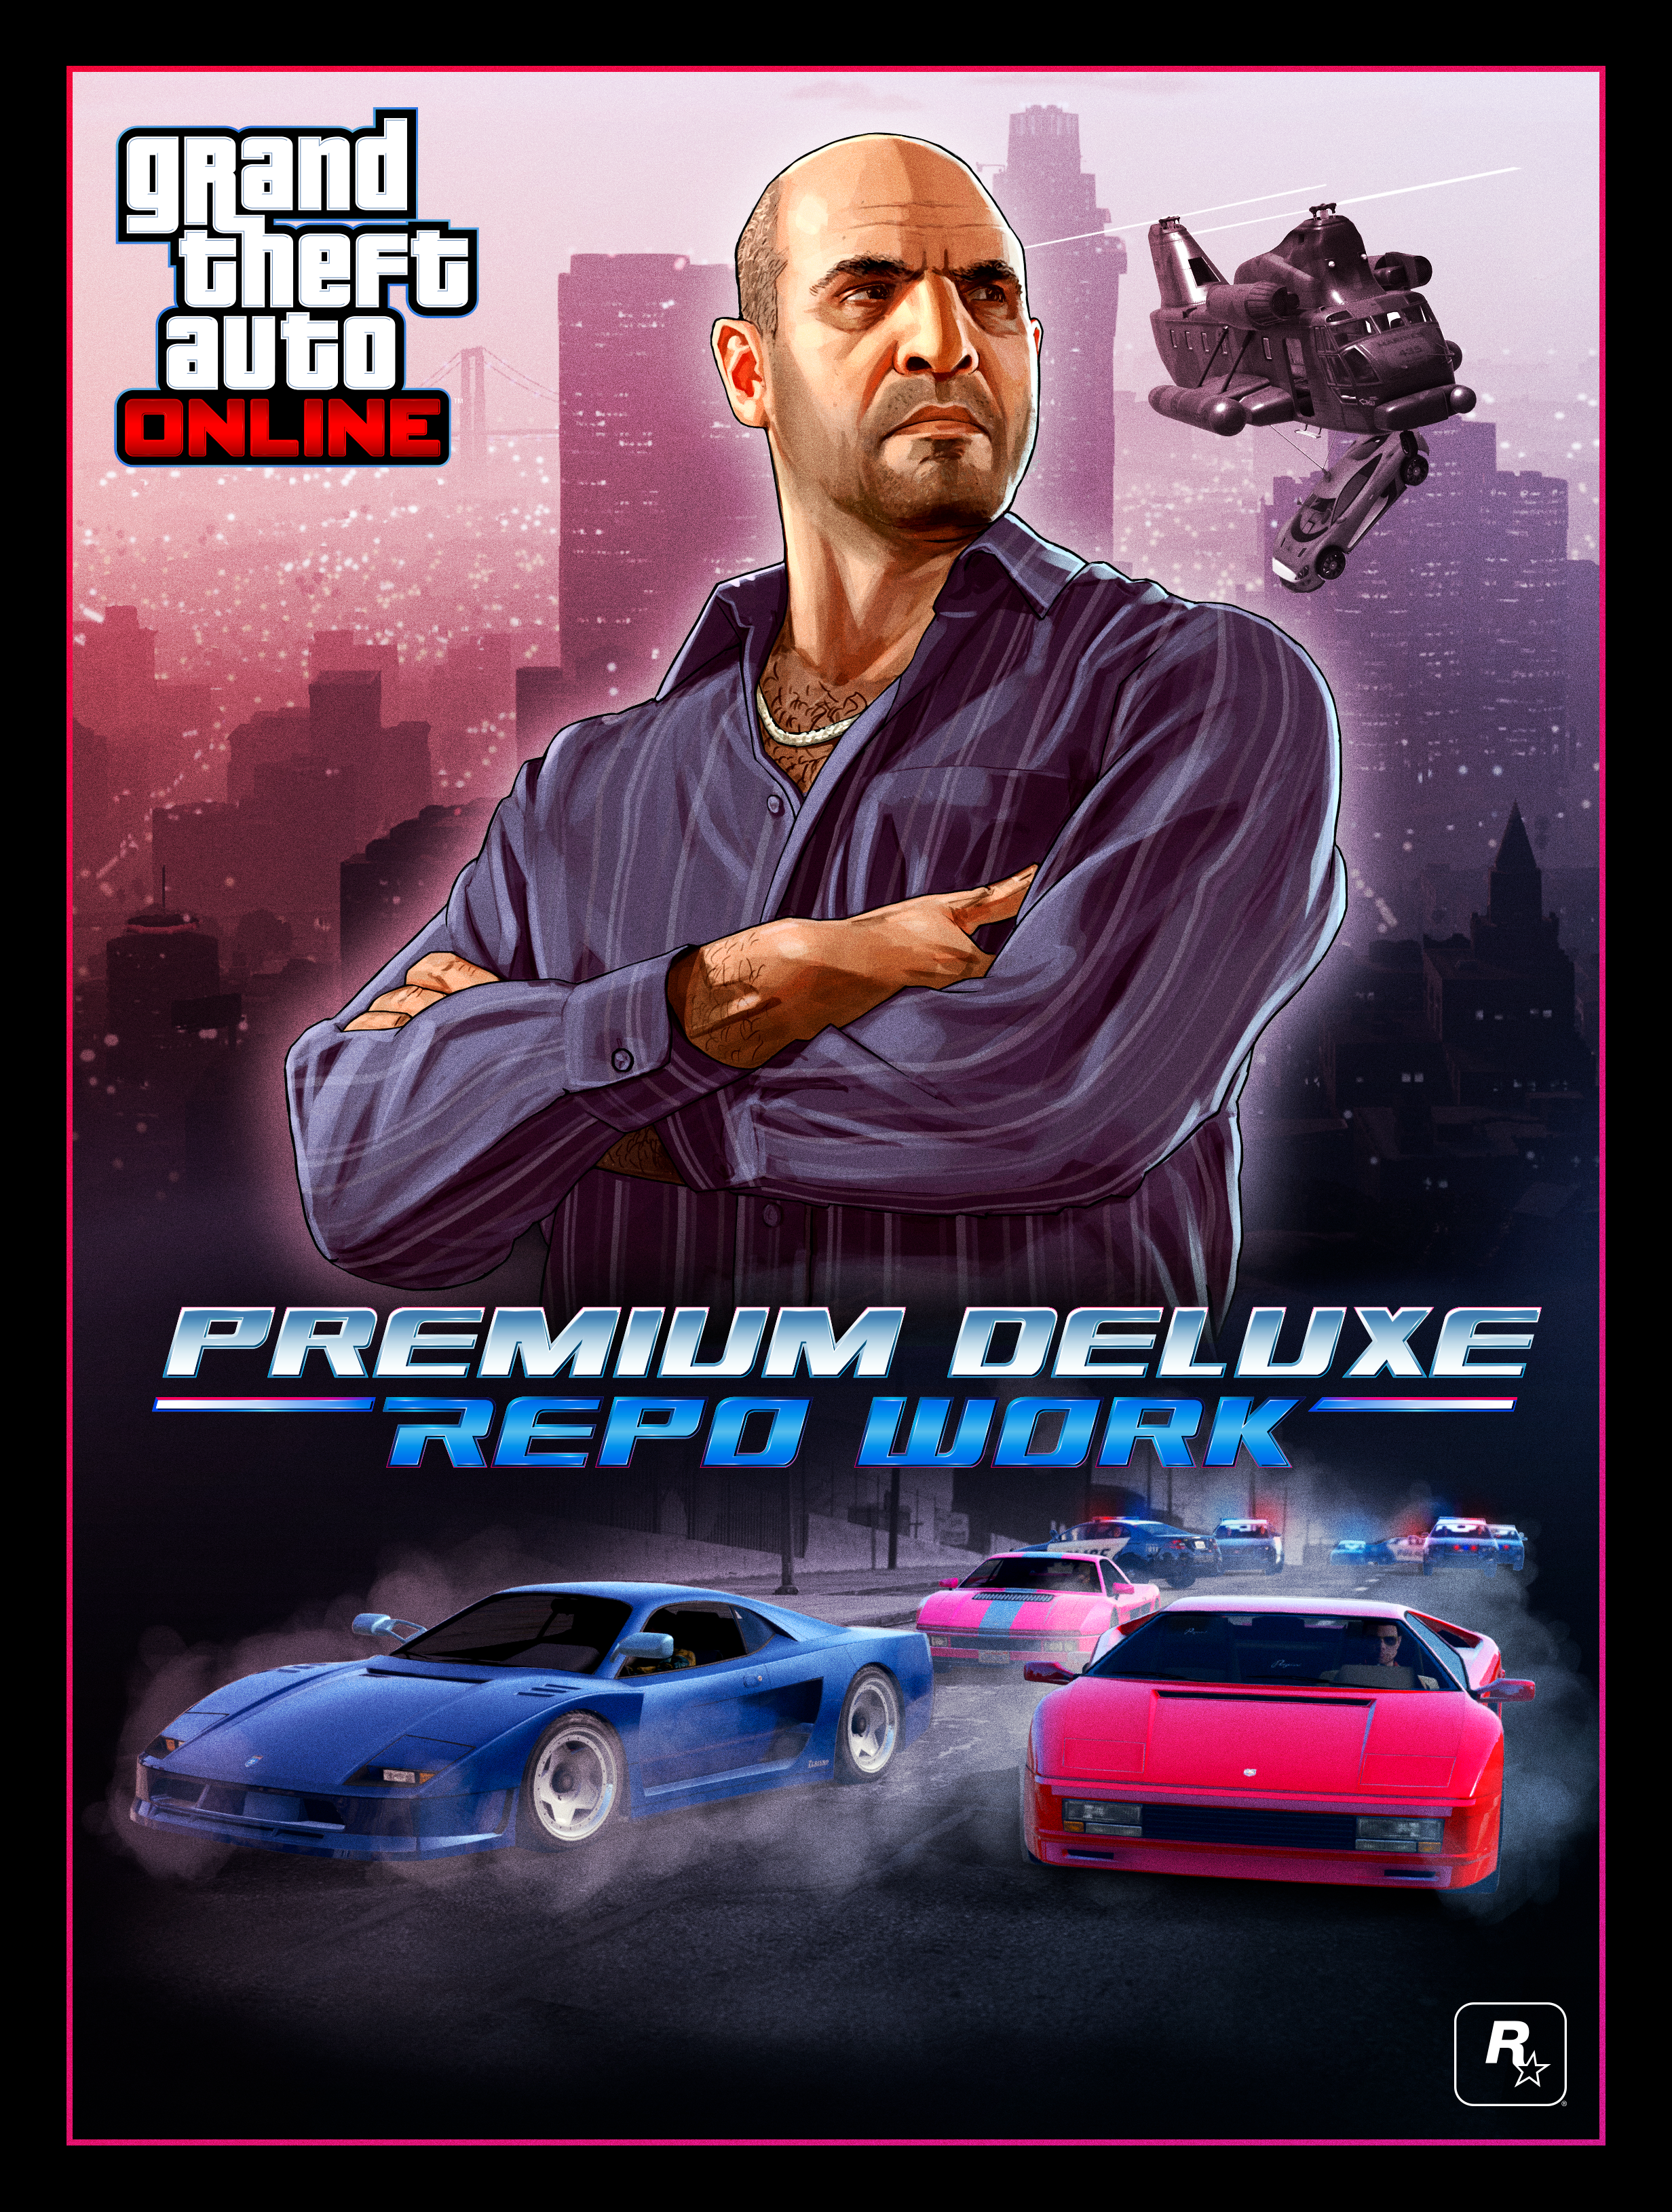 GTA Online Event week: New Simeon's premium deluxe repo work